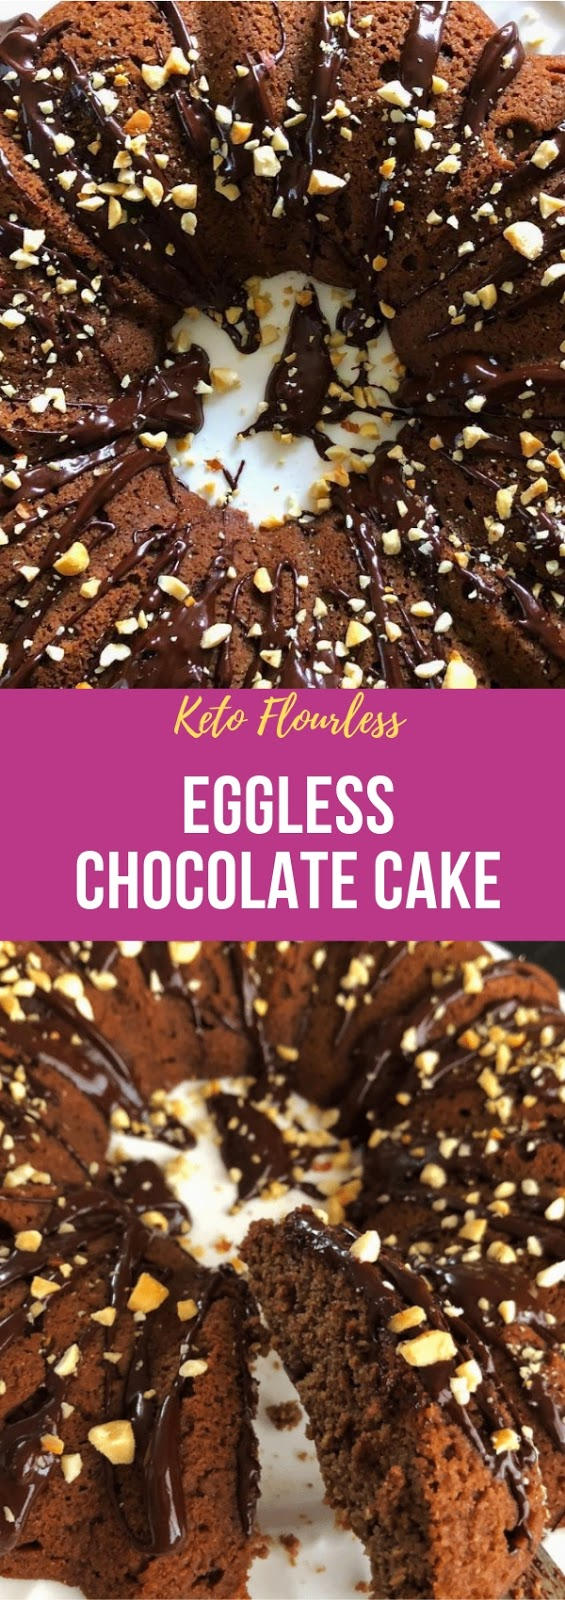 Keto Flourless Eggless Chocolate Cake #dessert #keto #flourless #eggless #chocolate #cake #glutenfree